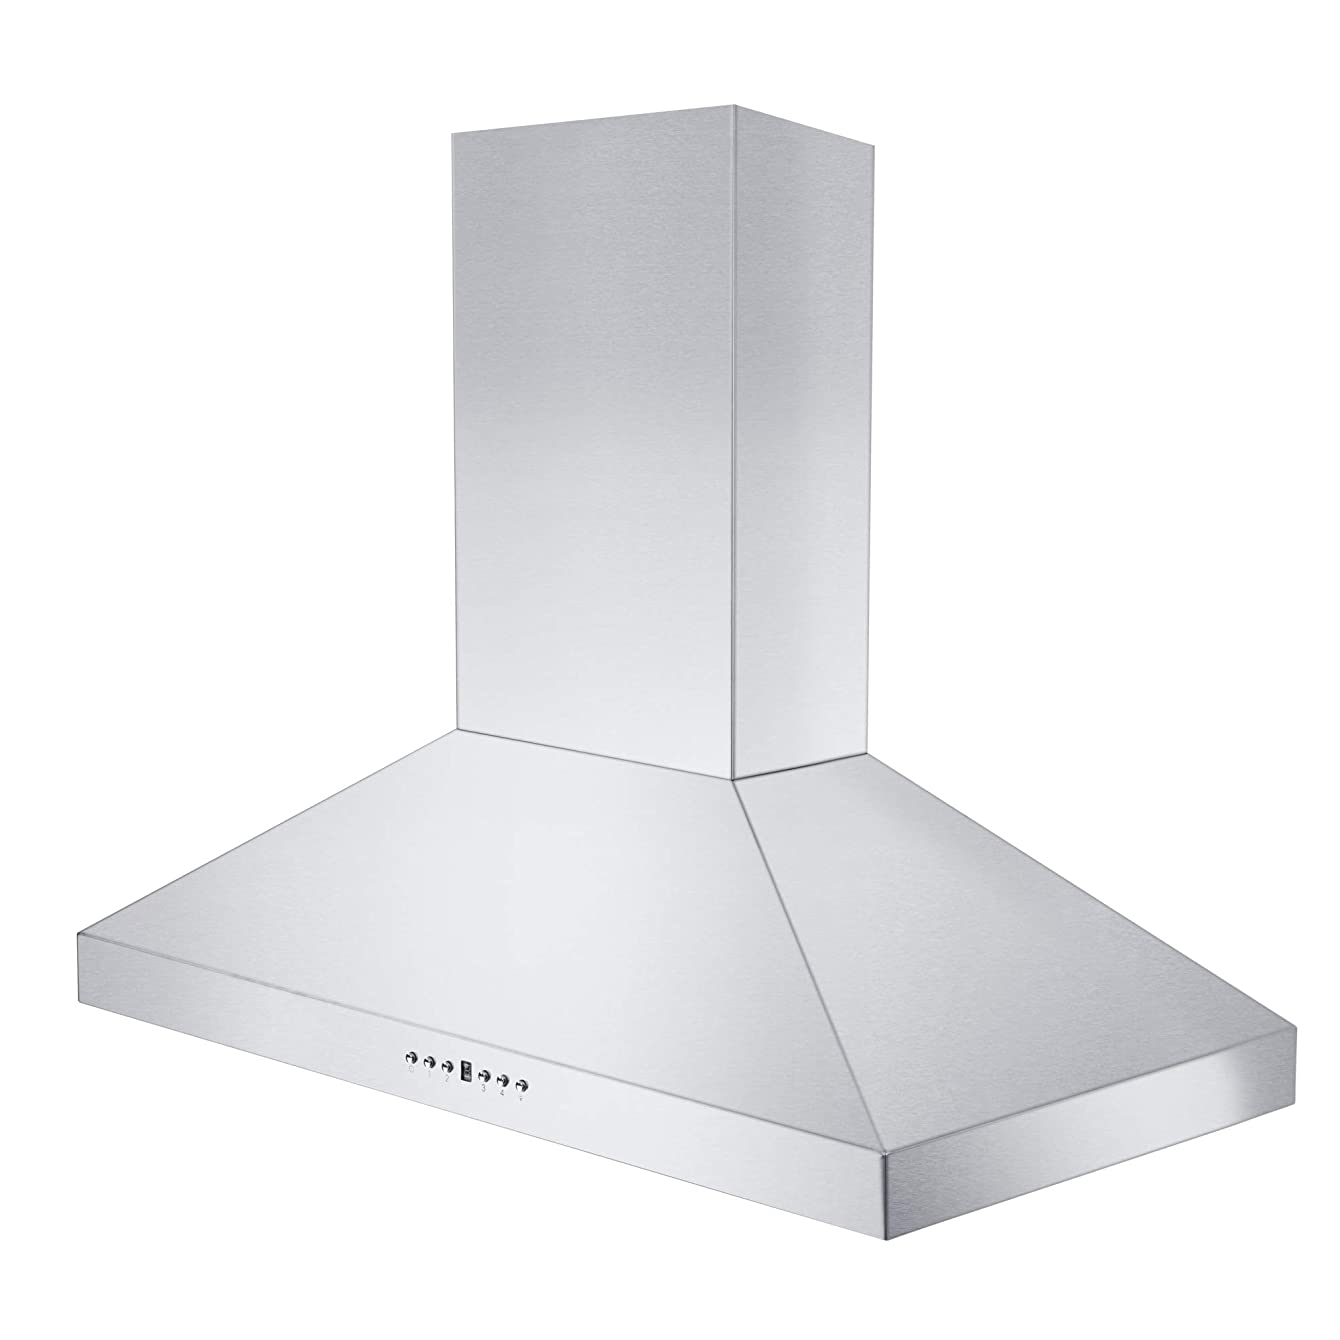 ZLINE 36 in. 400 CFM Wall Mount Range Hood in Stainless Steel (KL3-36-400)